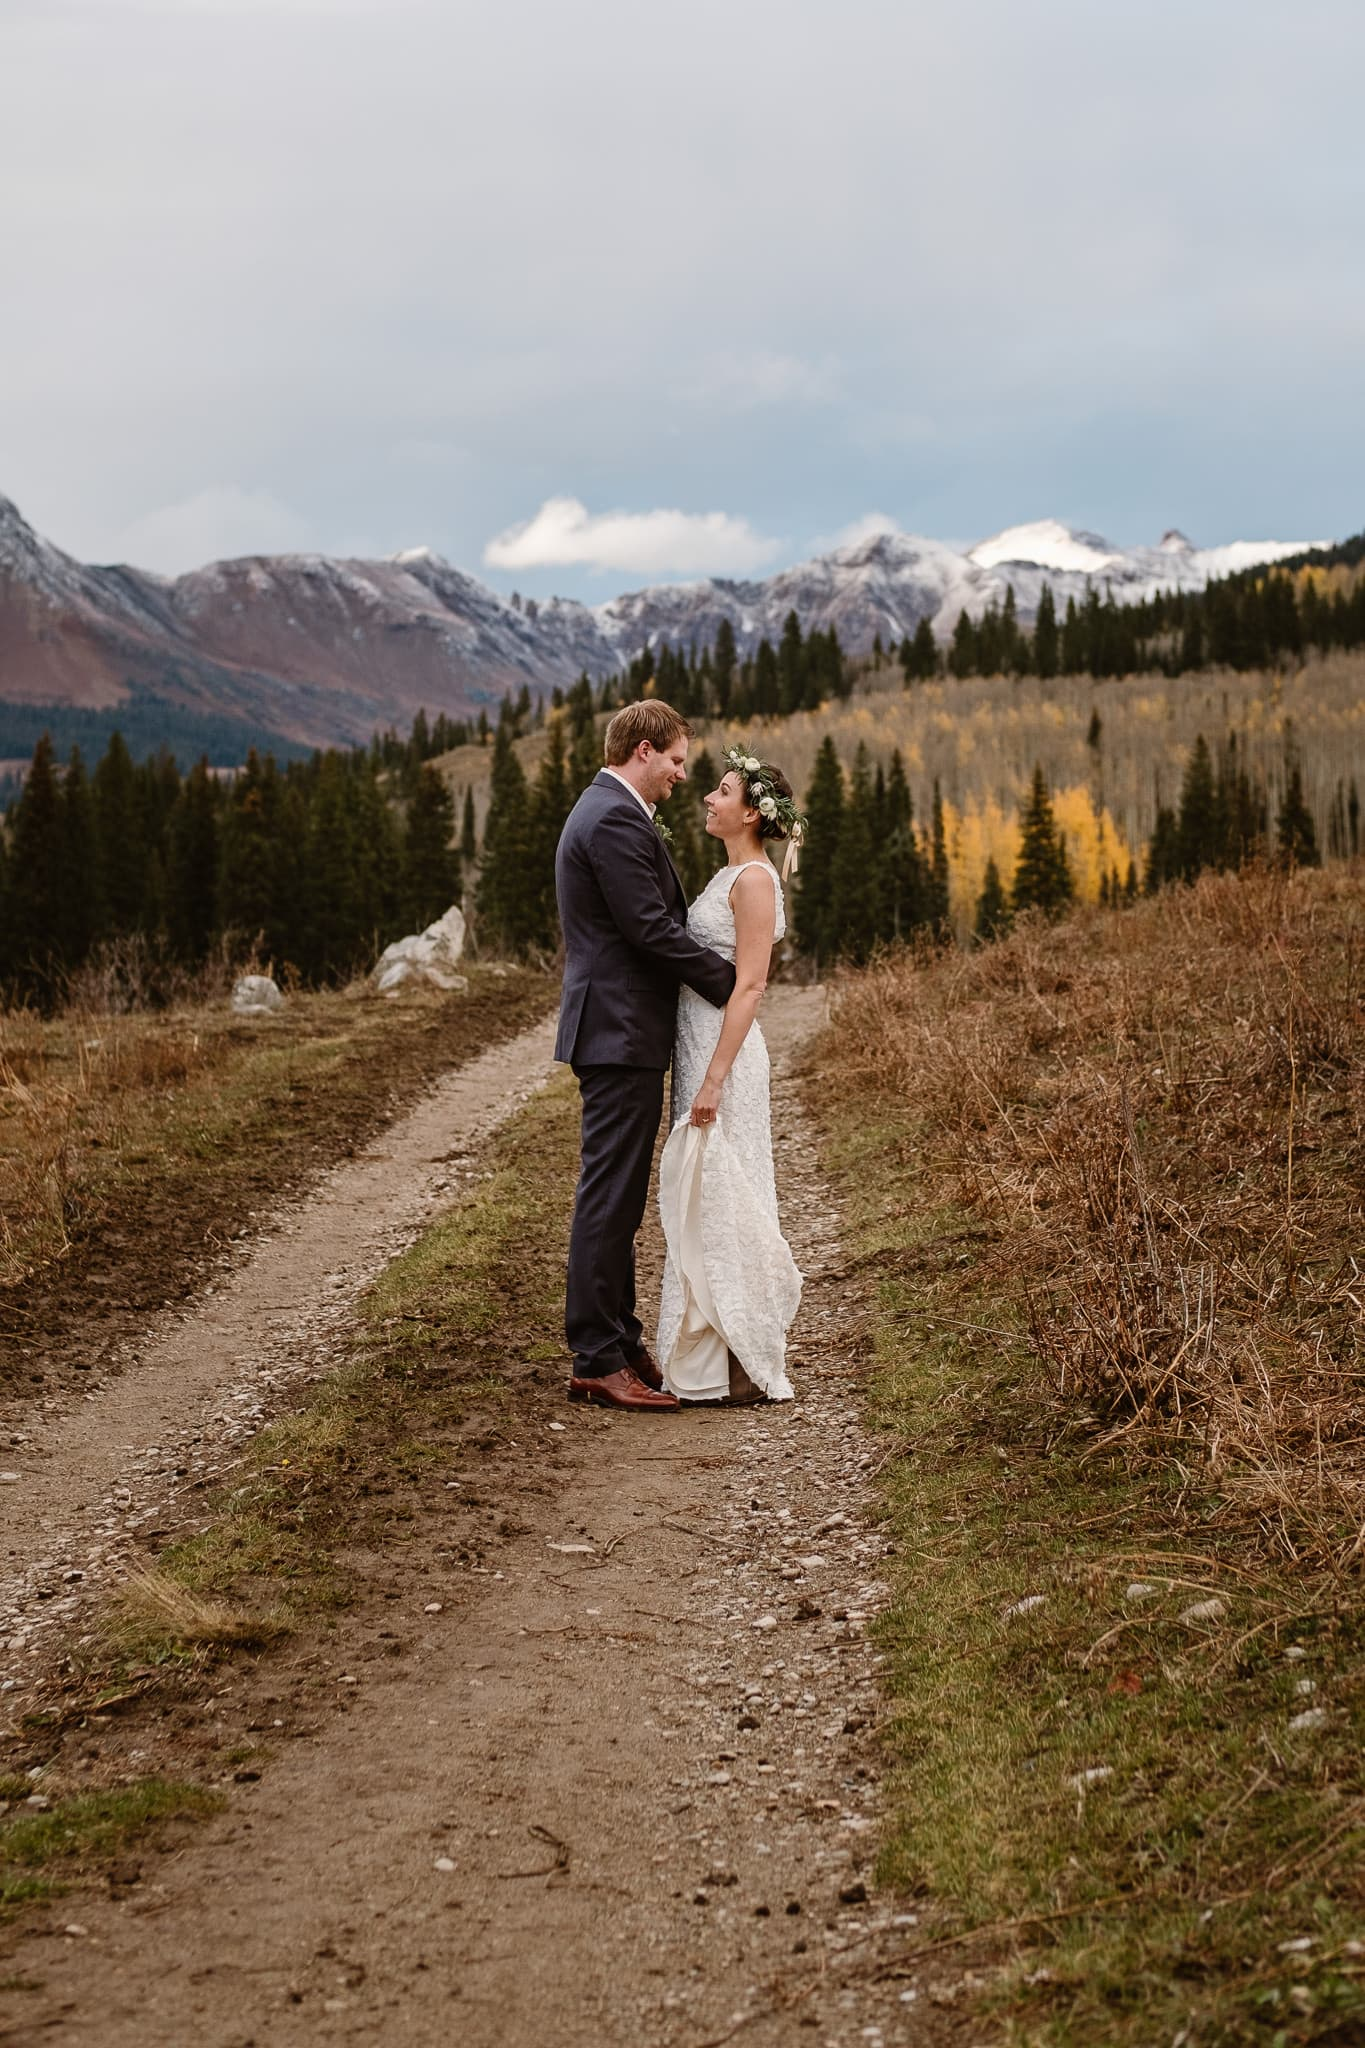 Crested Butte Wedding Photographer, Scarp Ridge Lodge intimate elopement, outdoor elopement in Colorado, Colorado mountain adventure wedding, bride and groom hiking portraits